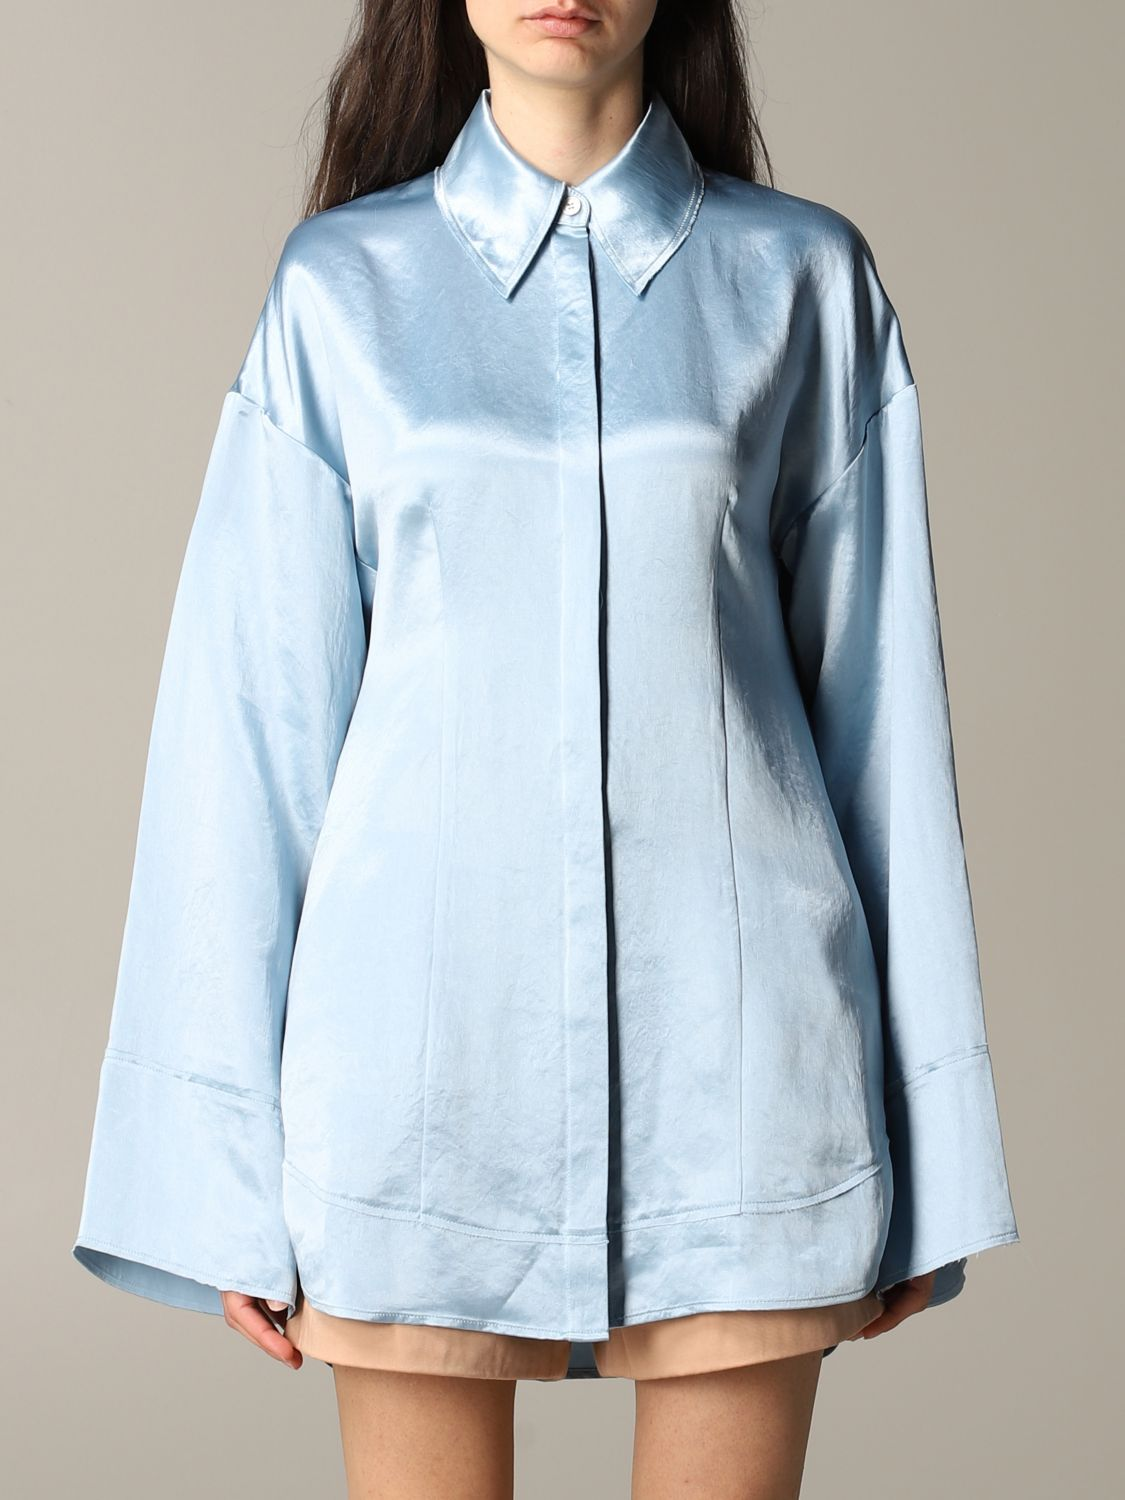 Shirt Acne Studios: Acne Studios wide shirt gnawed blue 1